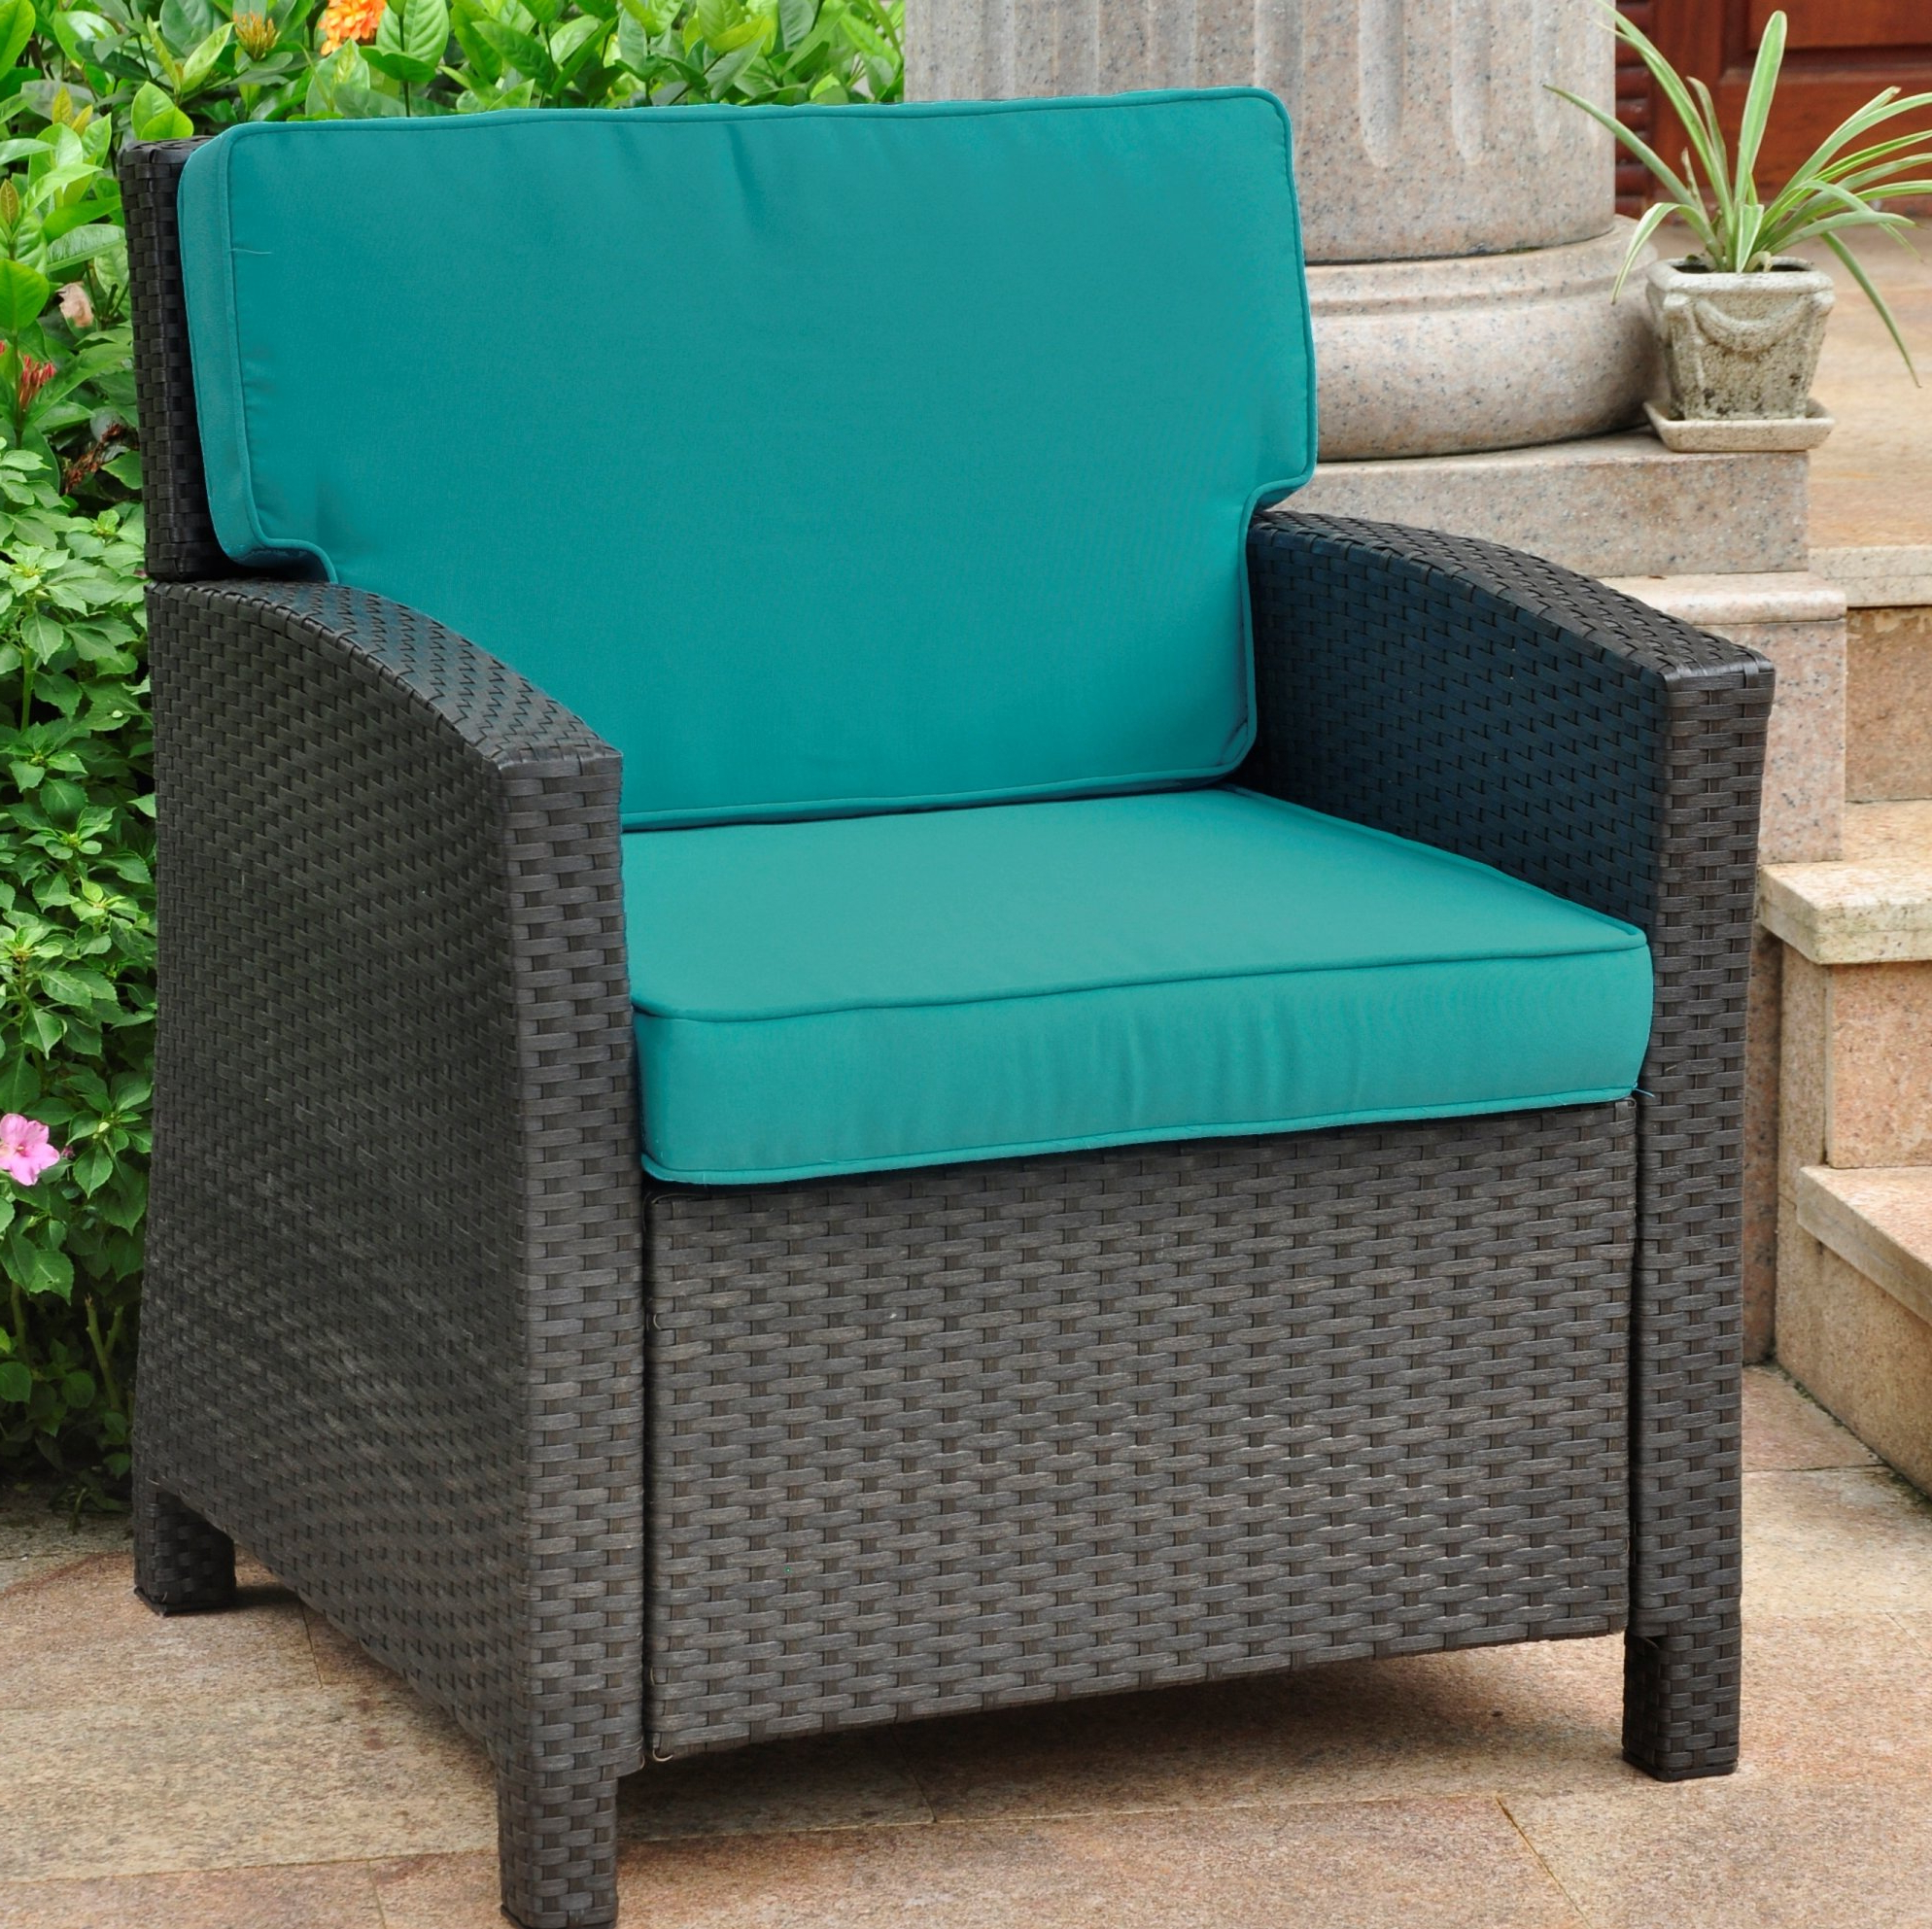 Stapleton Wicker Resin Patio Sofas With Cushions With Regard To 2020 Charlton Home Stapleton Wicker Resin Contemporary Patio Chair With Cushion (View 6 of 20)